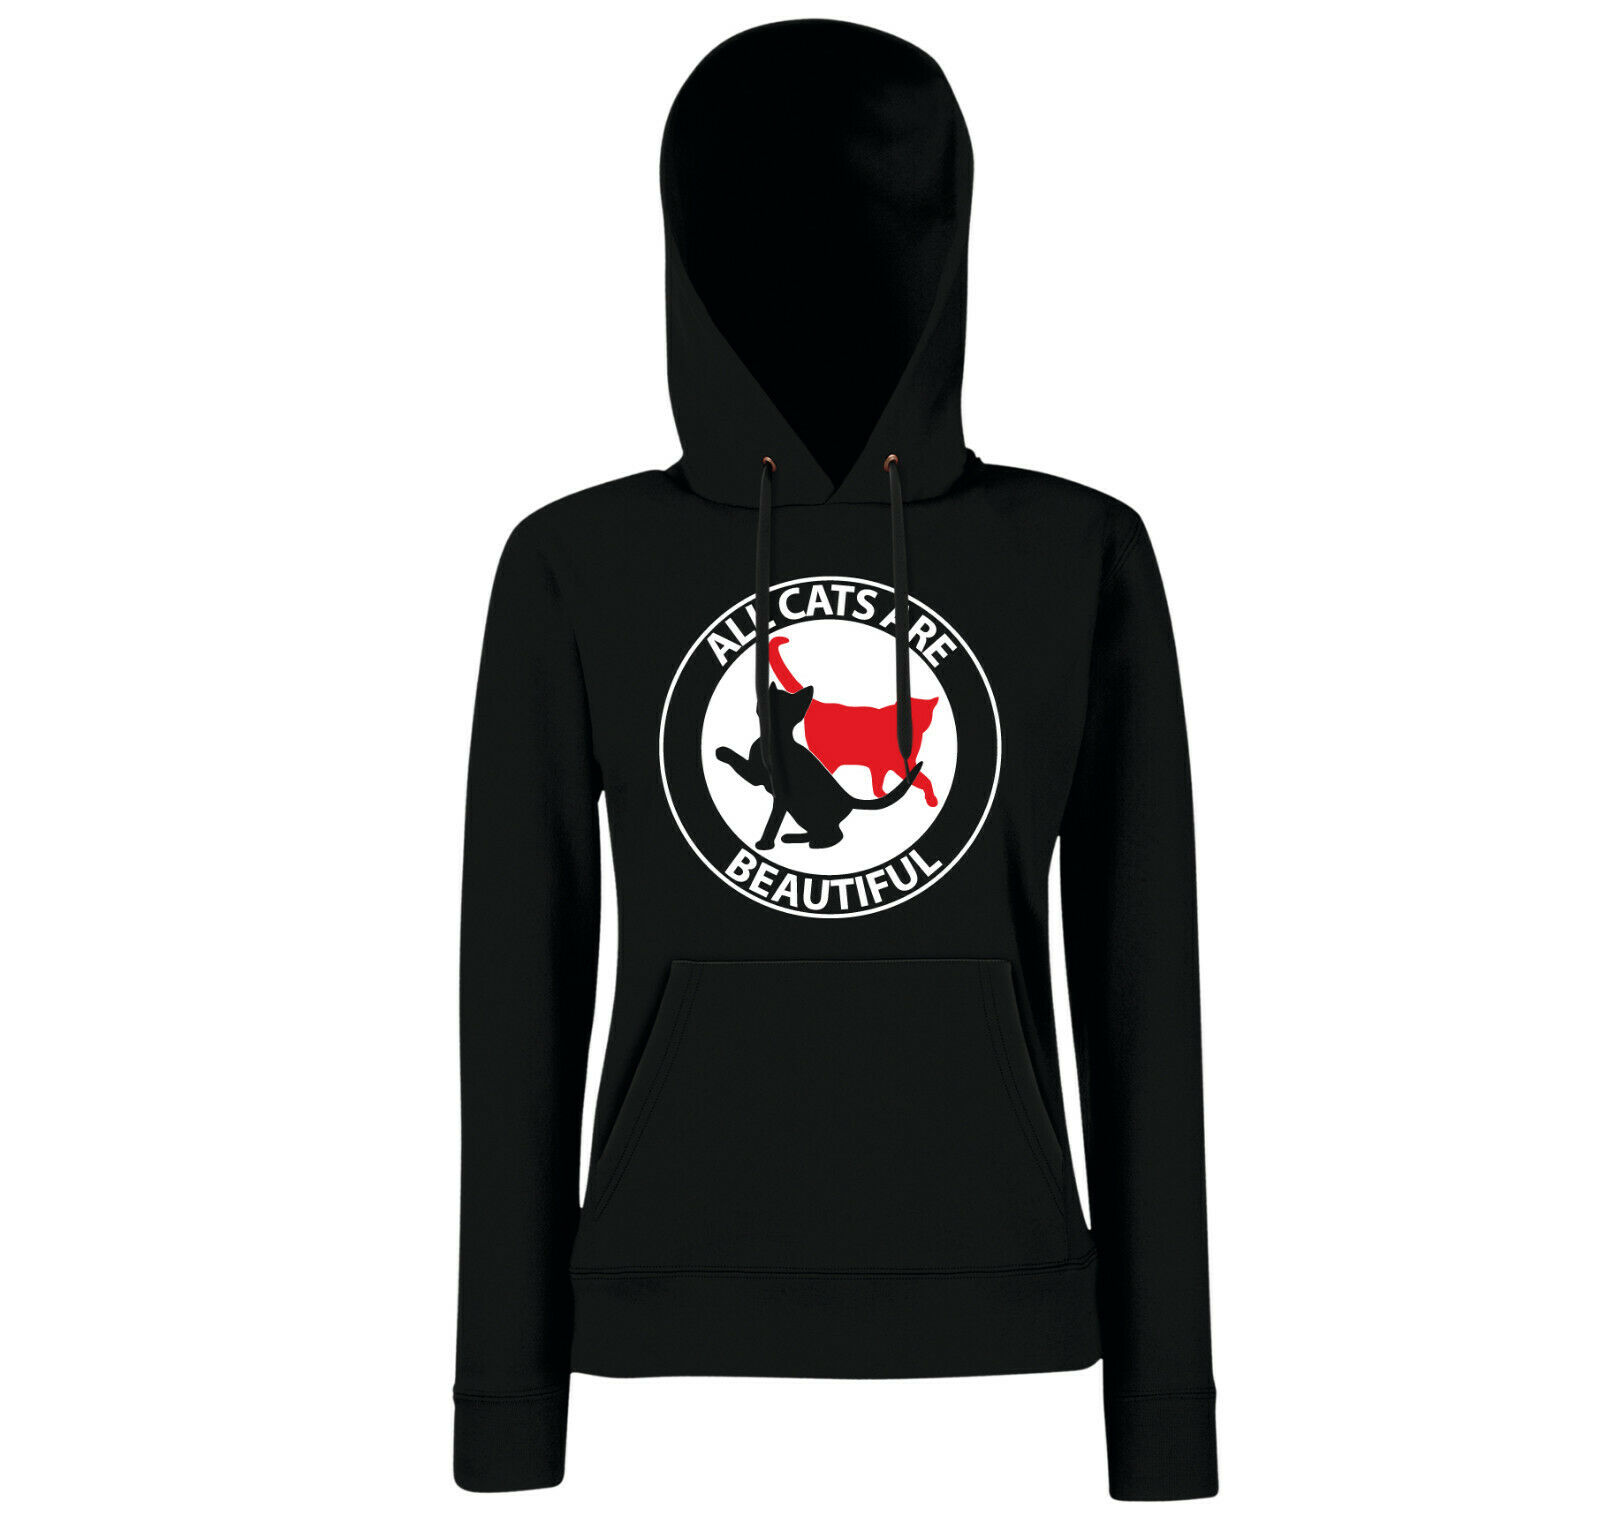 All cats are beautiful Girls Hoodie schwarz